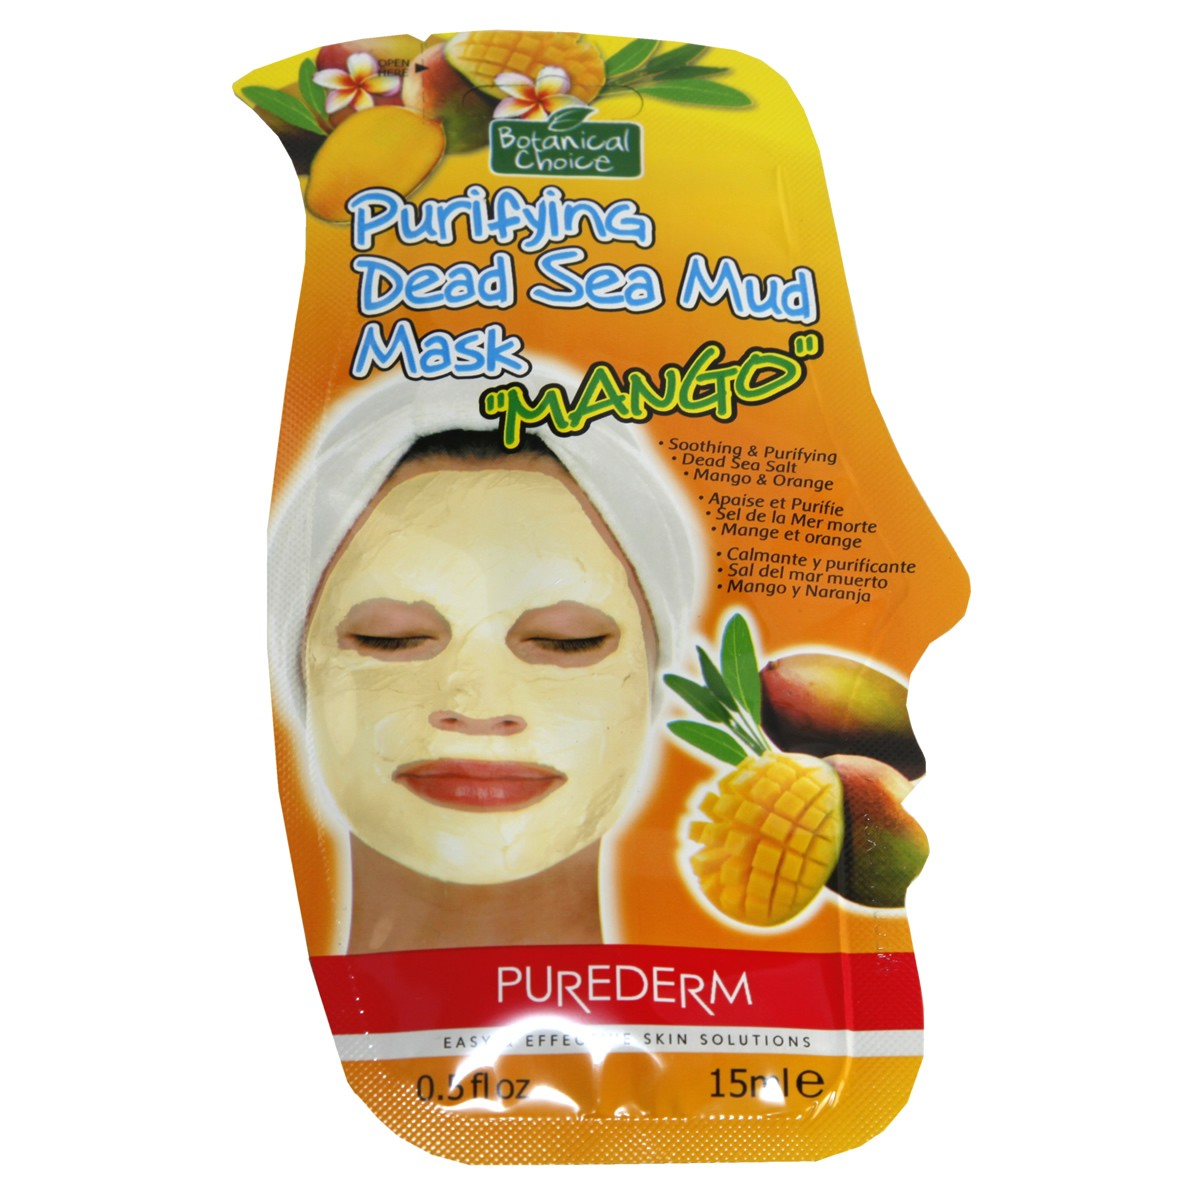 PureDerm Purifying Dead Sea Mud Mask with Mango